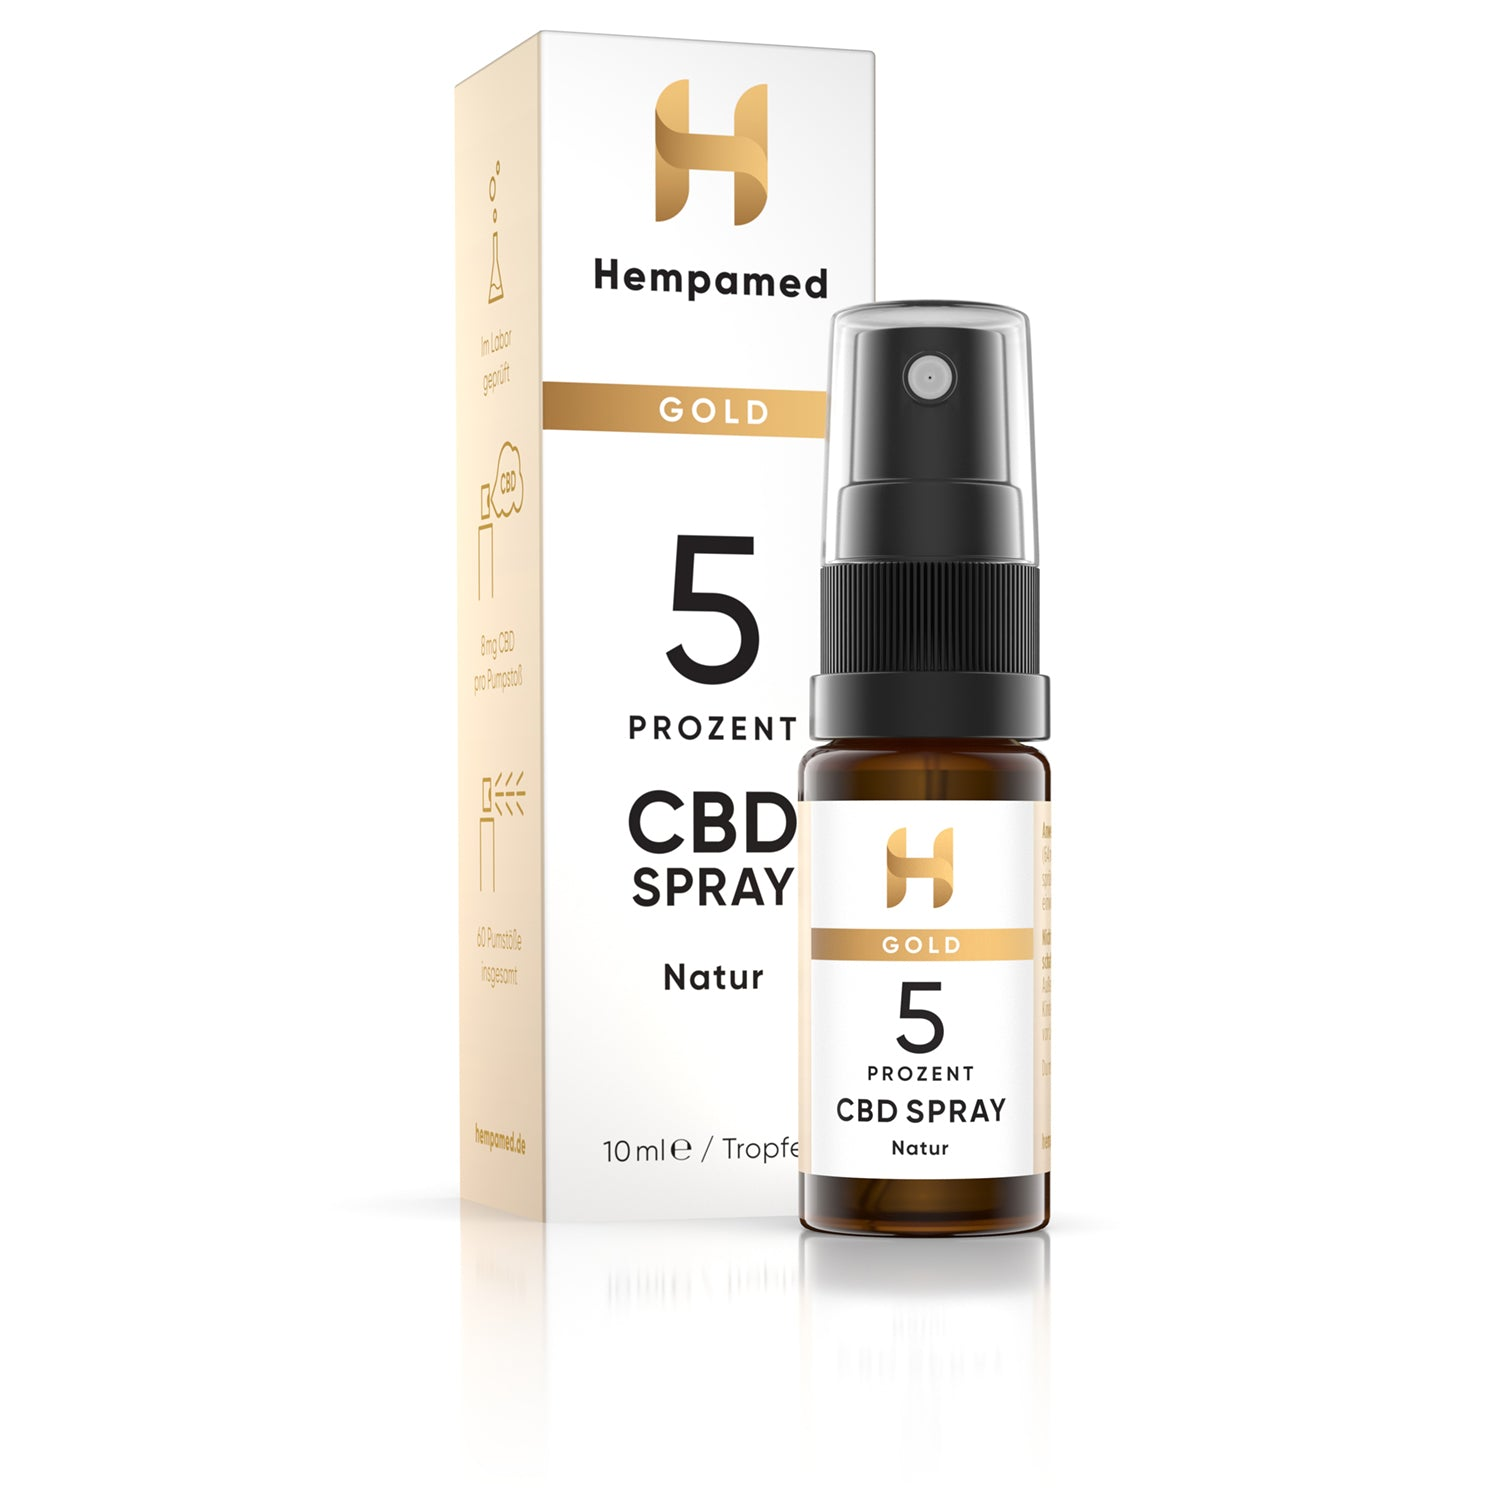 Hempamed CBD Mundspray Natur 5% (10ml)